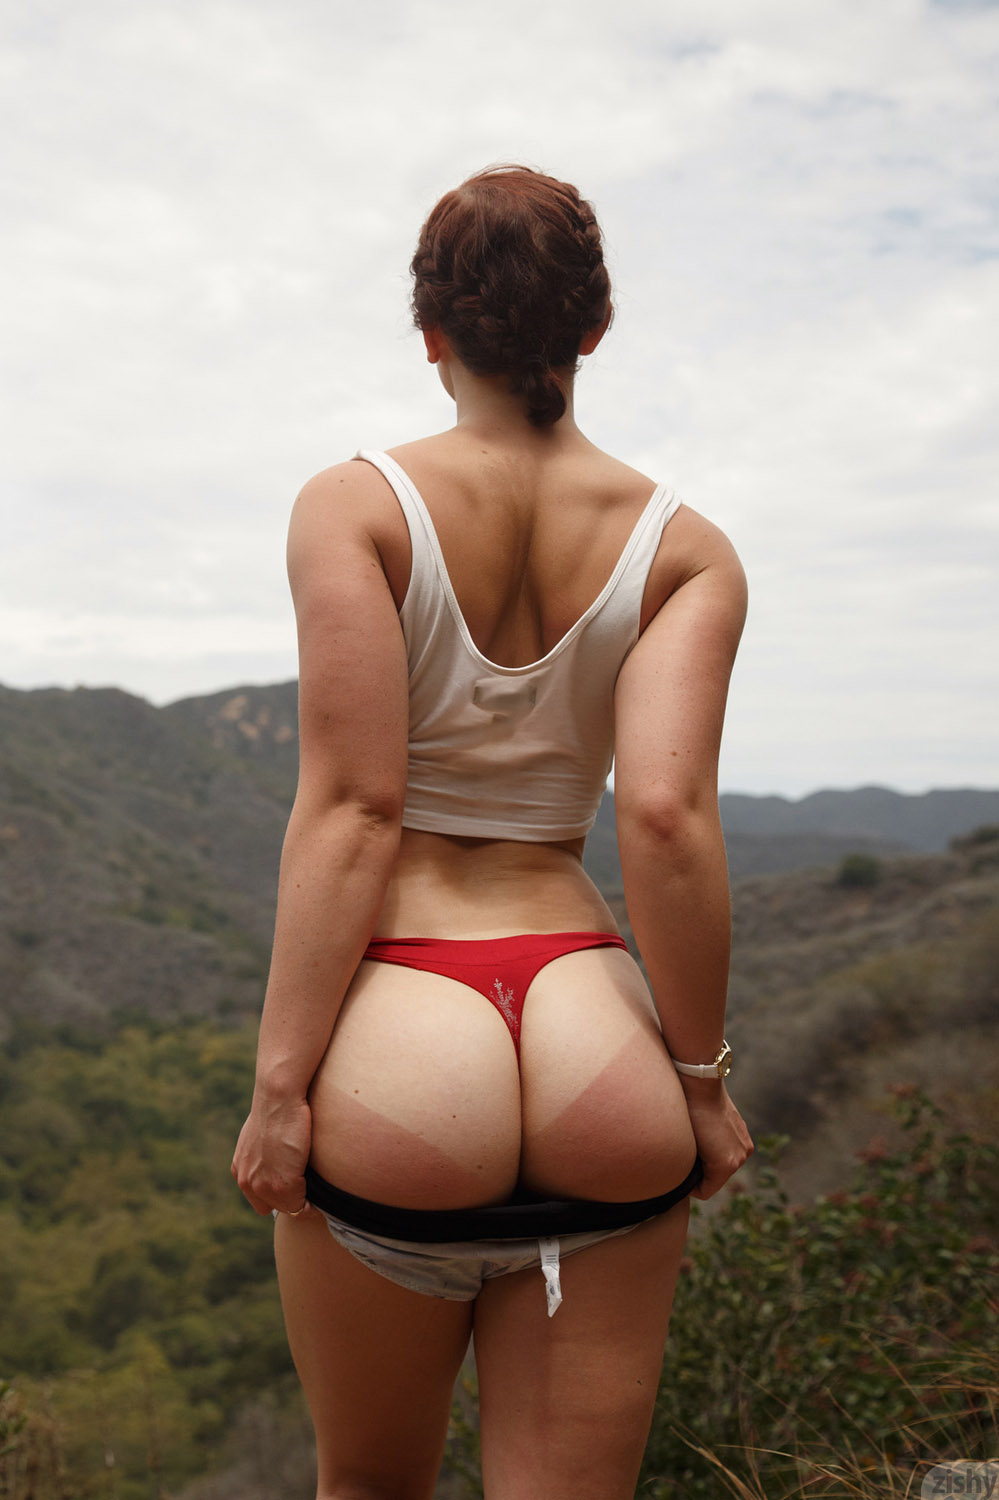 These are uncensored pics of Spencer Bisson nude in public: www.hottystop.com/spencer-bisson-the-naughty-hiker-zishy